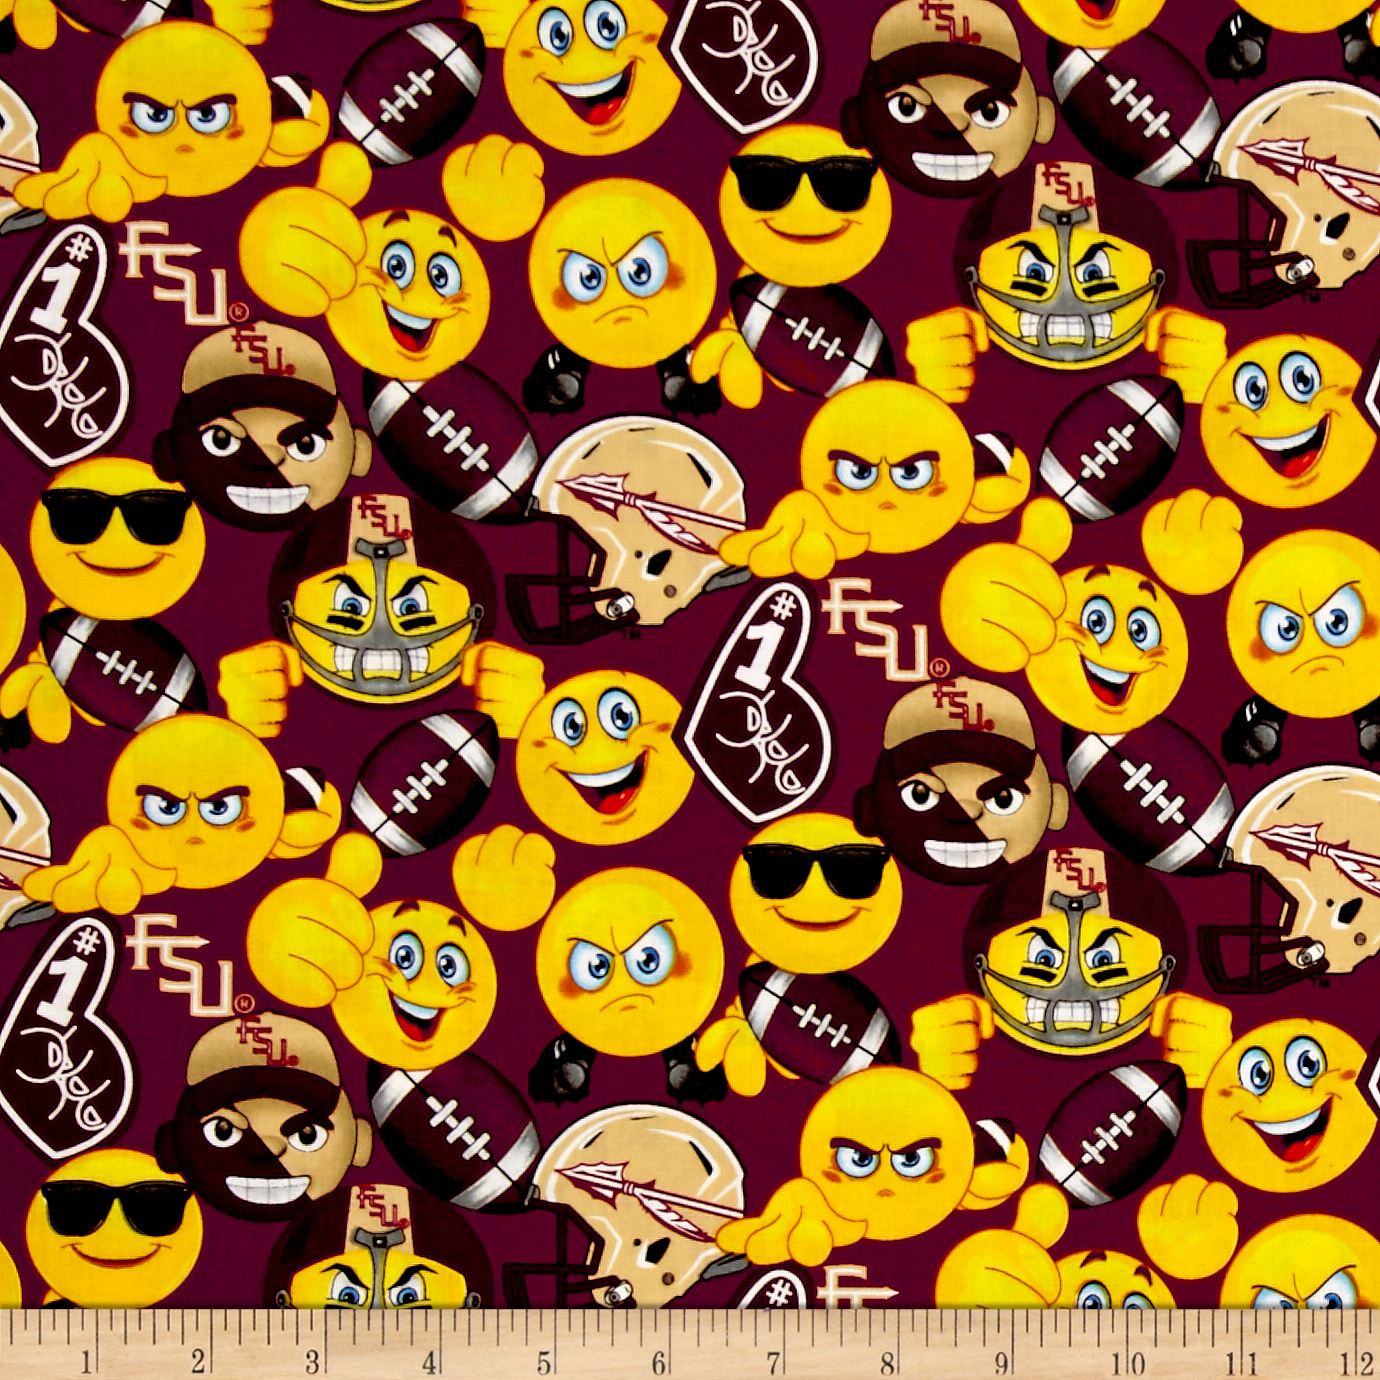 Collegiate Cotton Florida State University Emojis Fabric by Sykel in USA